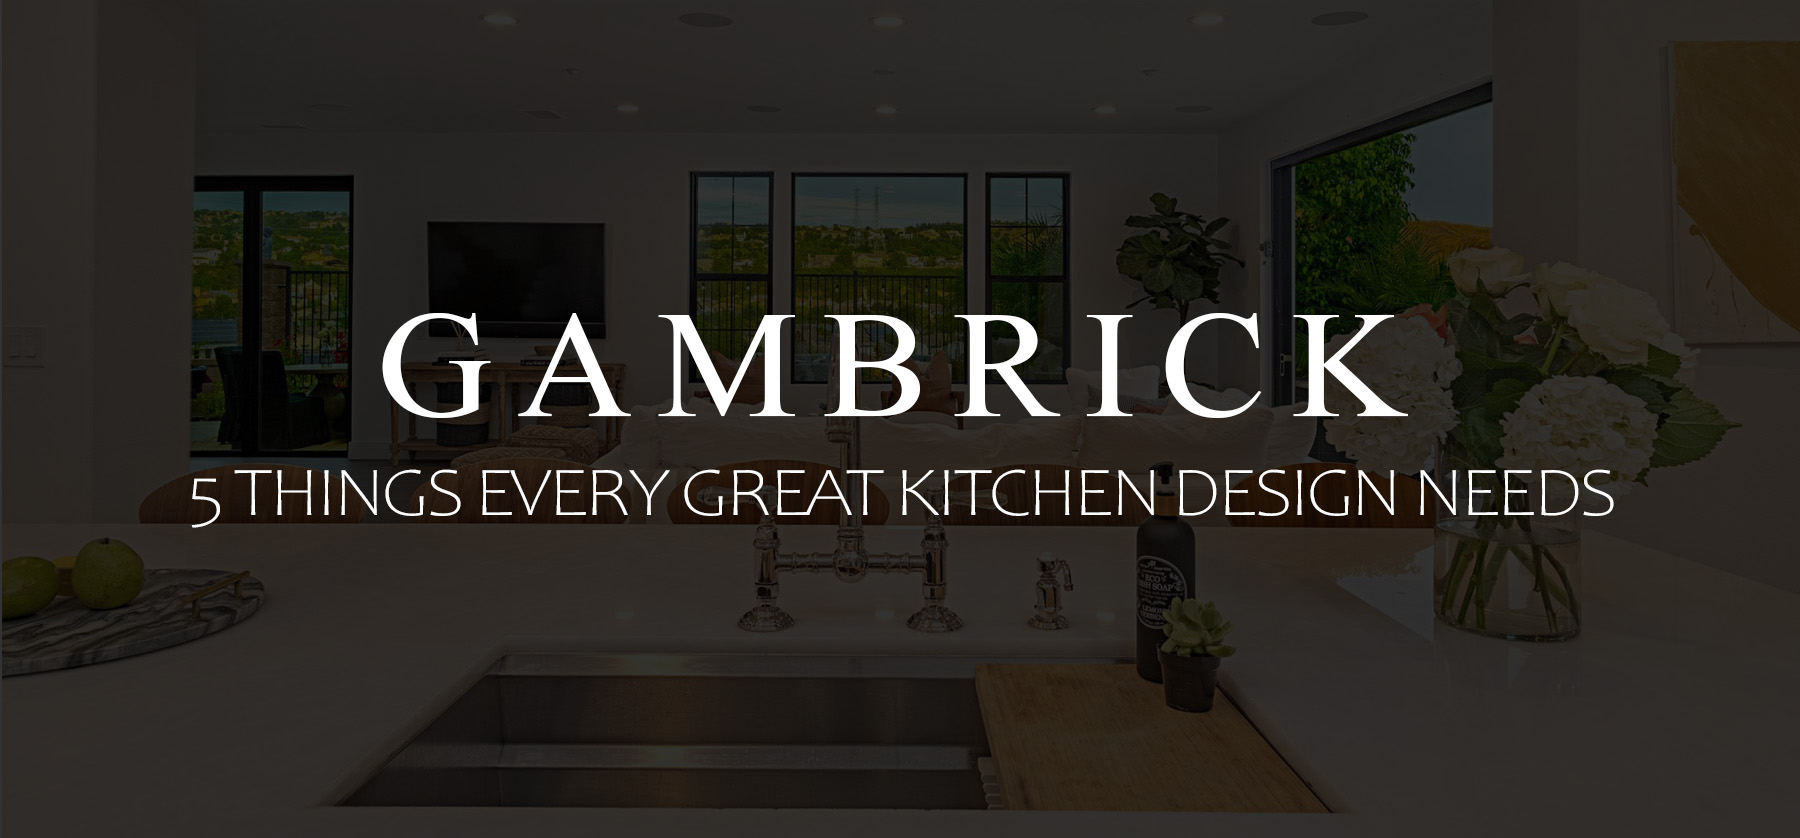 5 Things Every Great Kitchen Design Needs banner 1